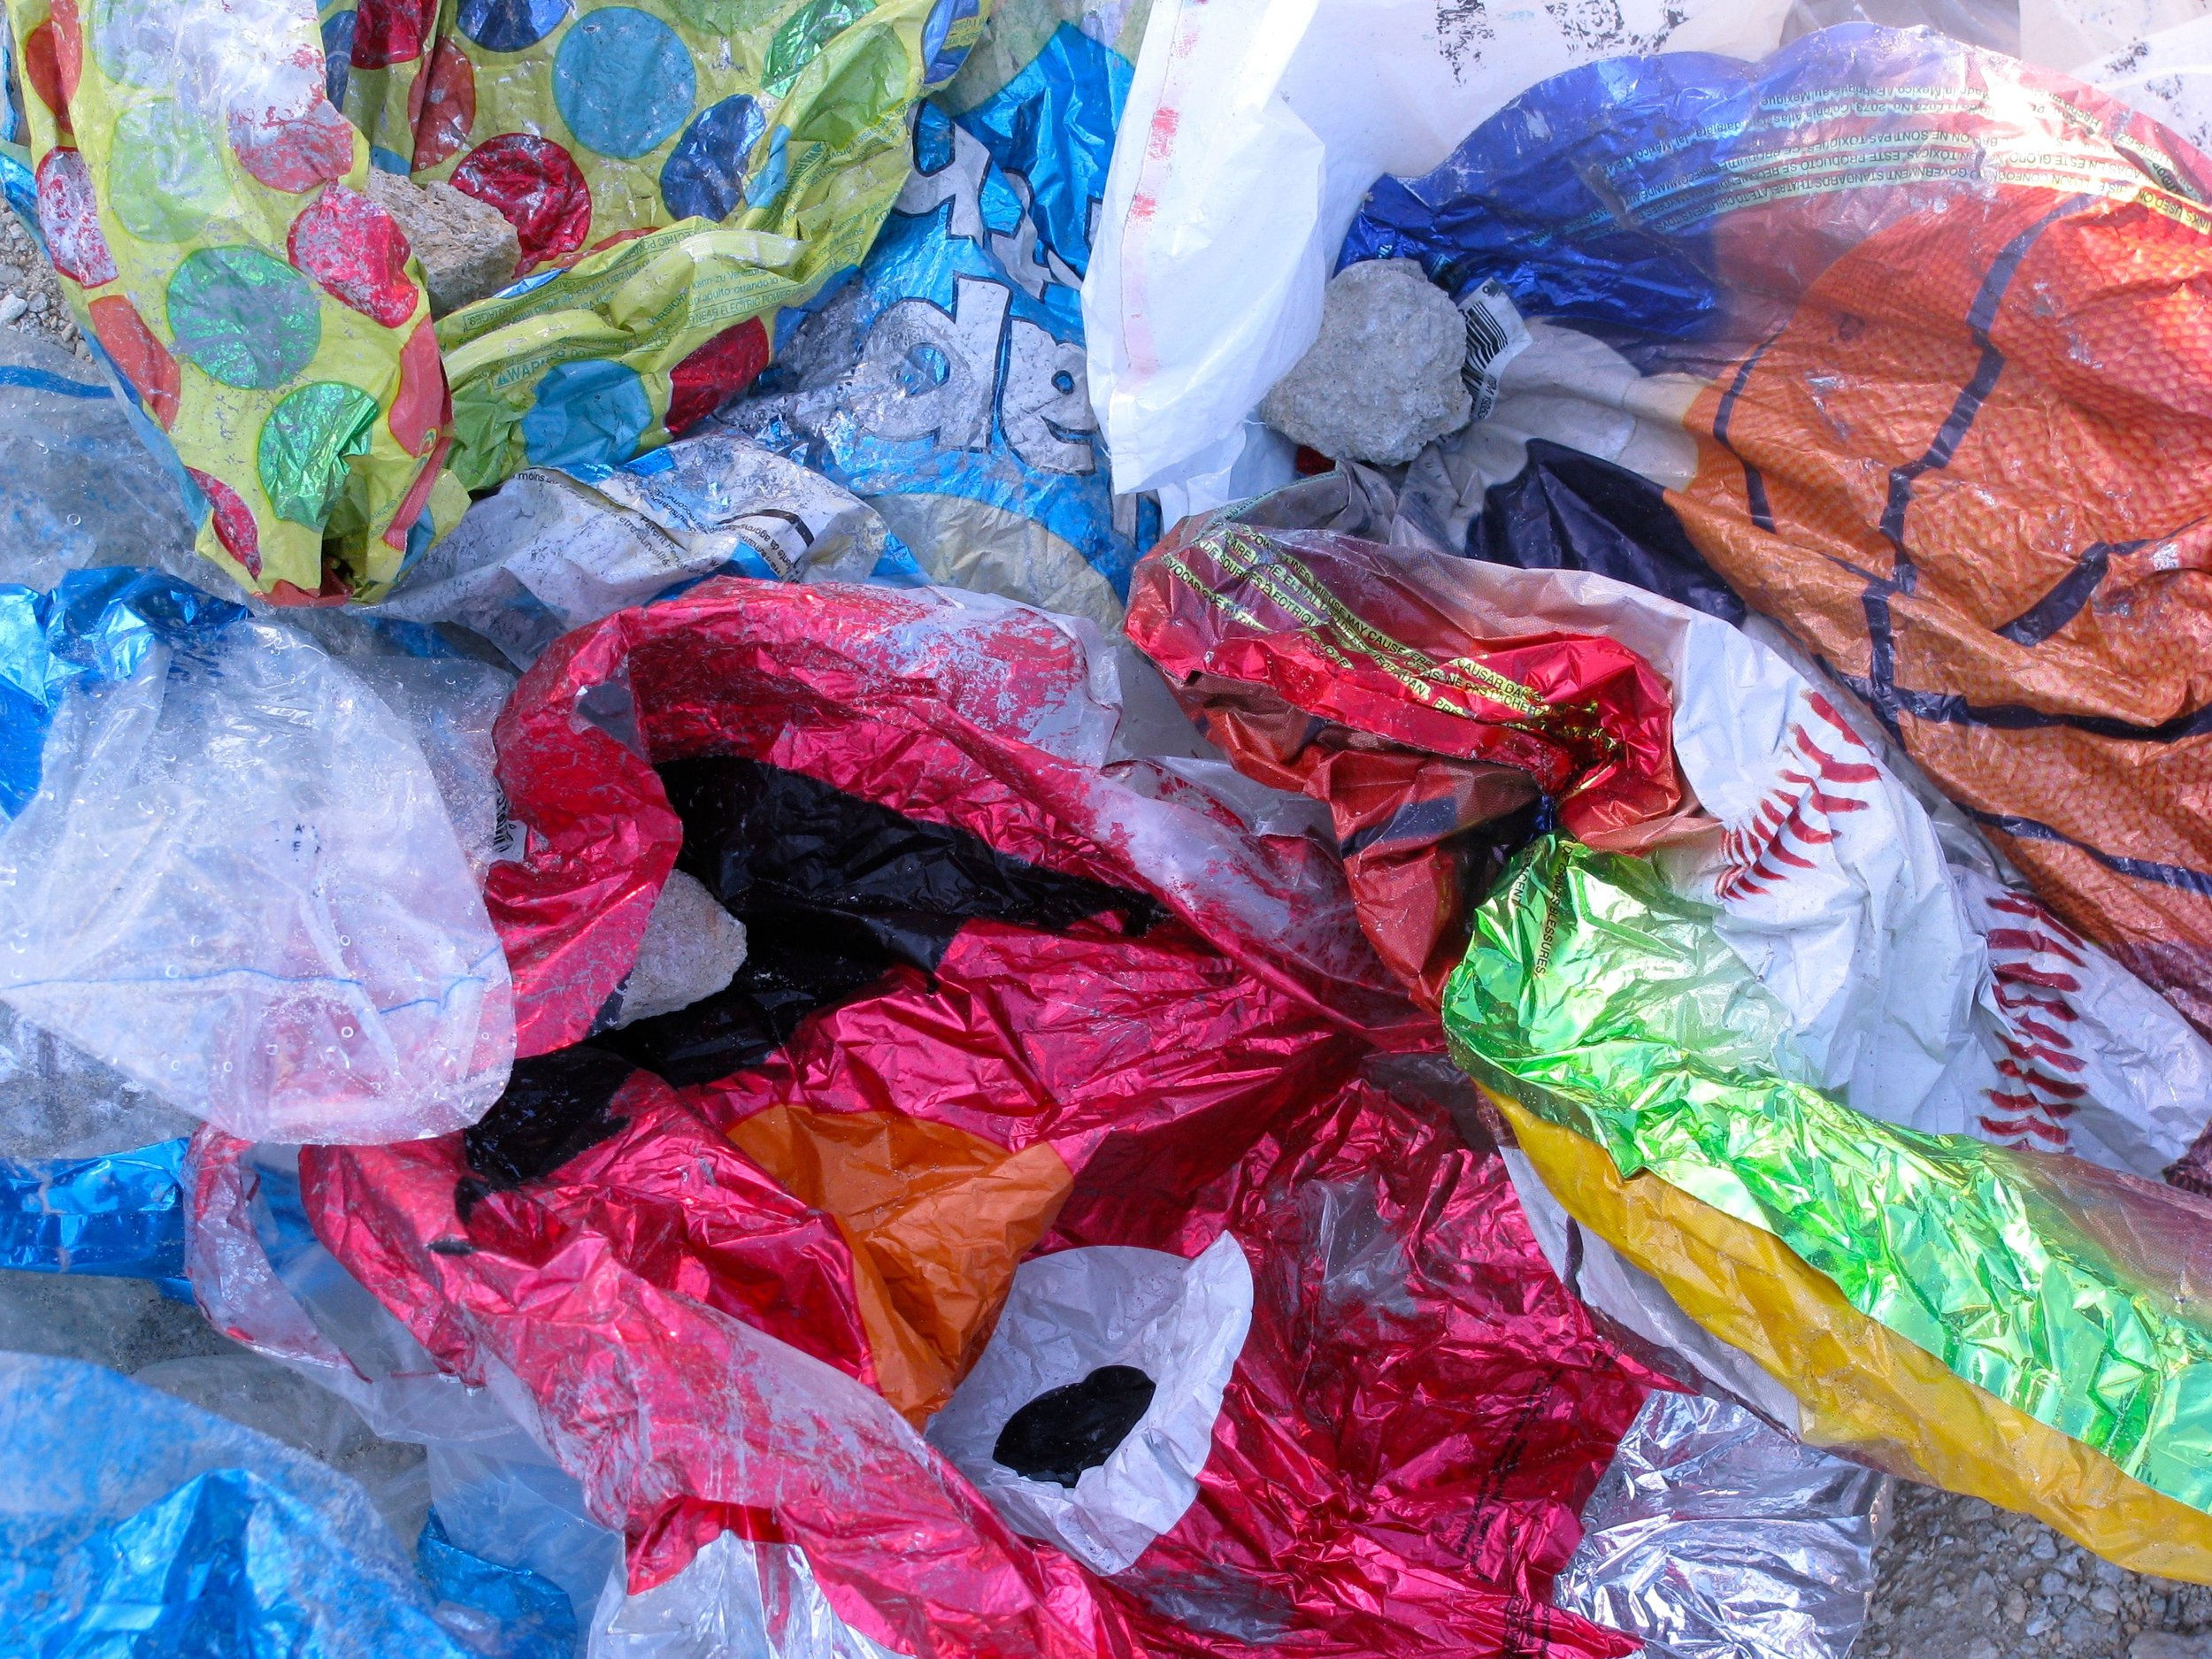 Plastic and latex balloons are one of the most common trash items on South Carolina beaches. (Photo: Erin Weeks/SCDNR)